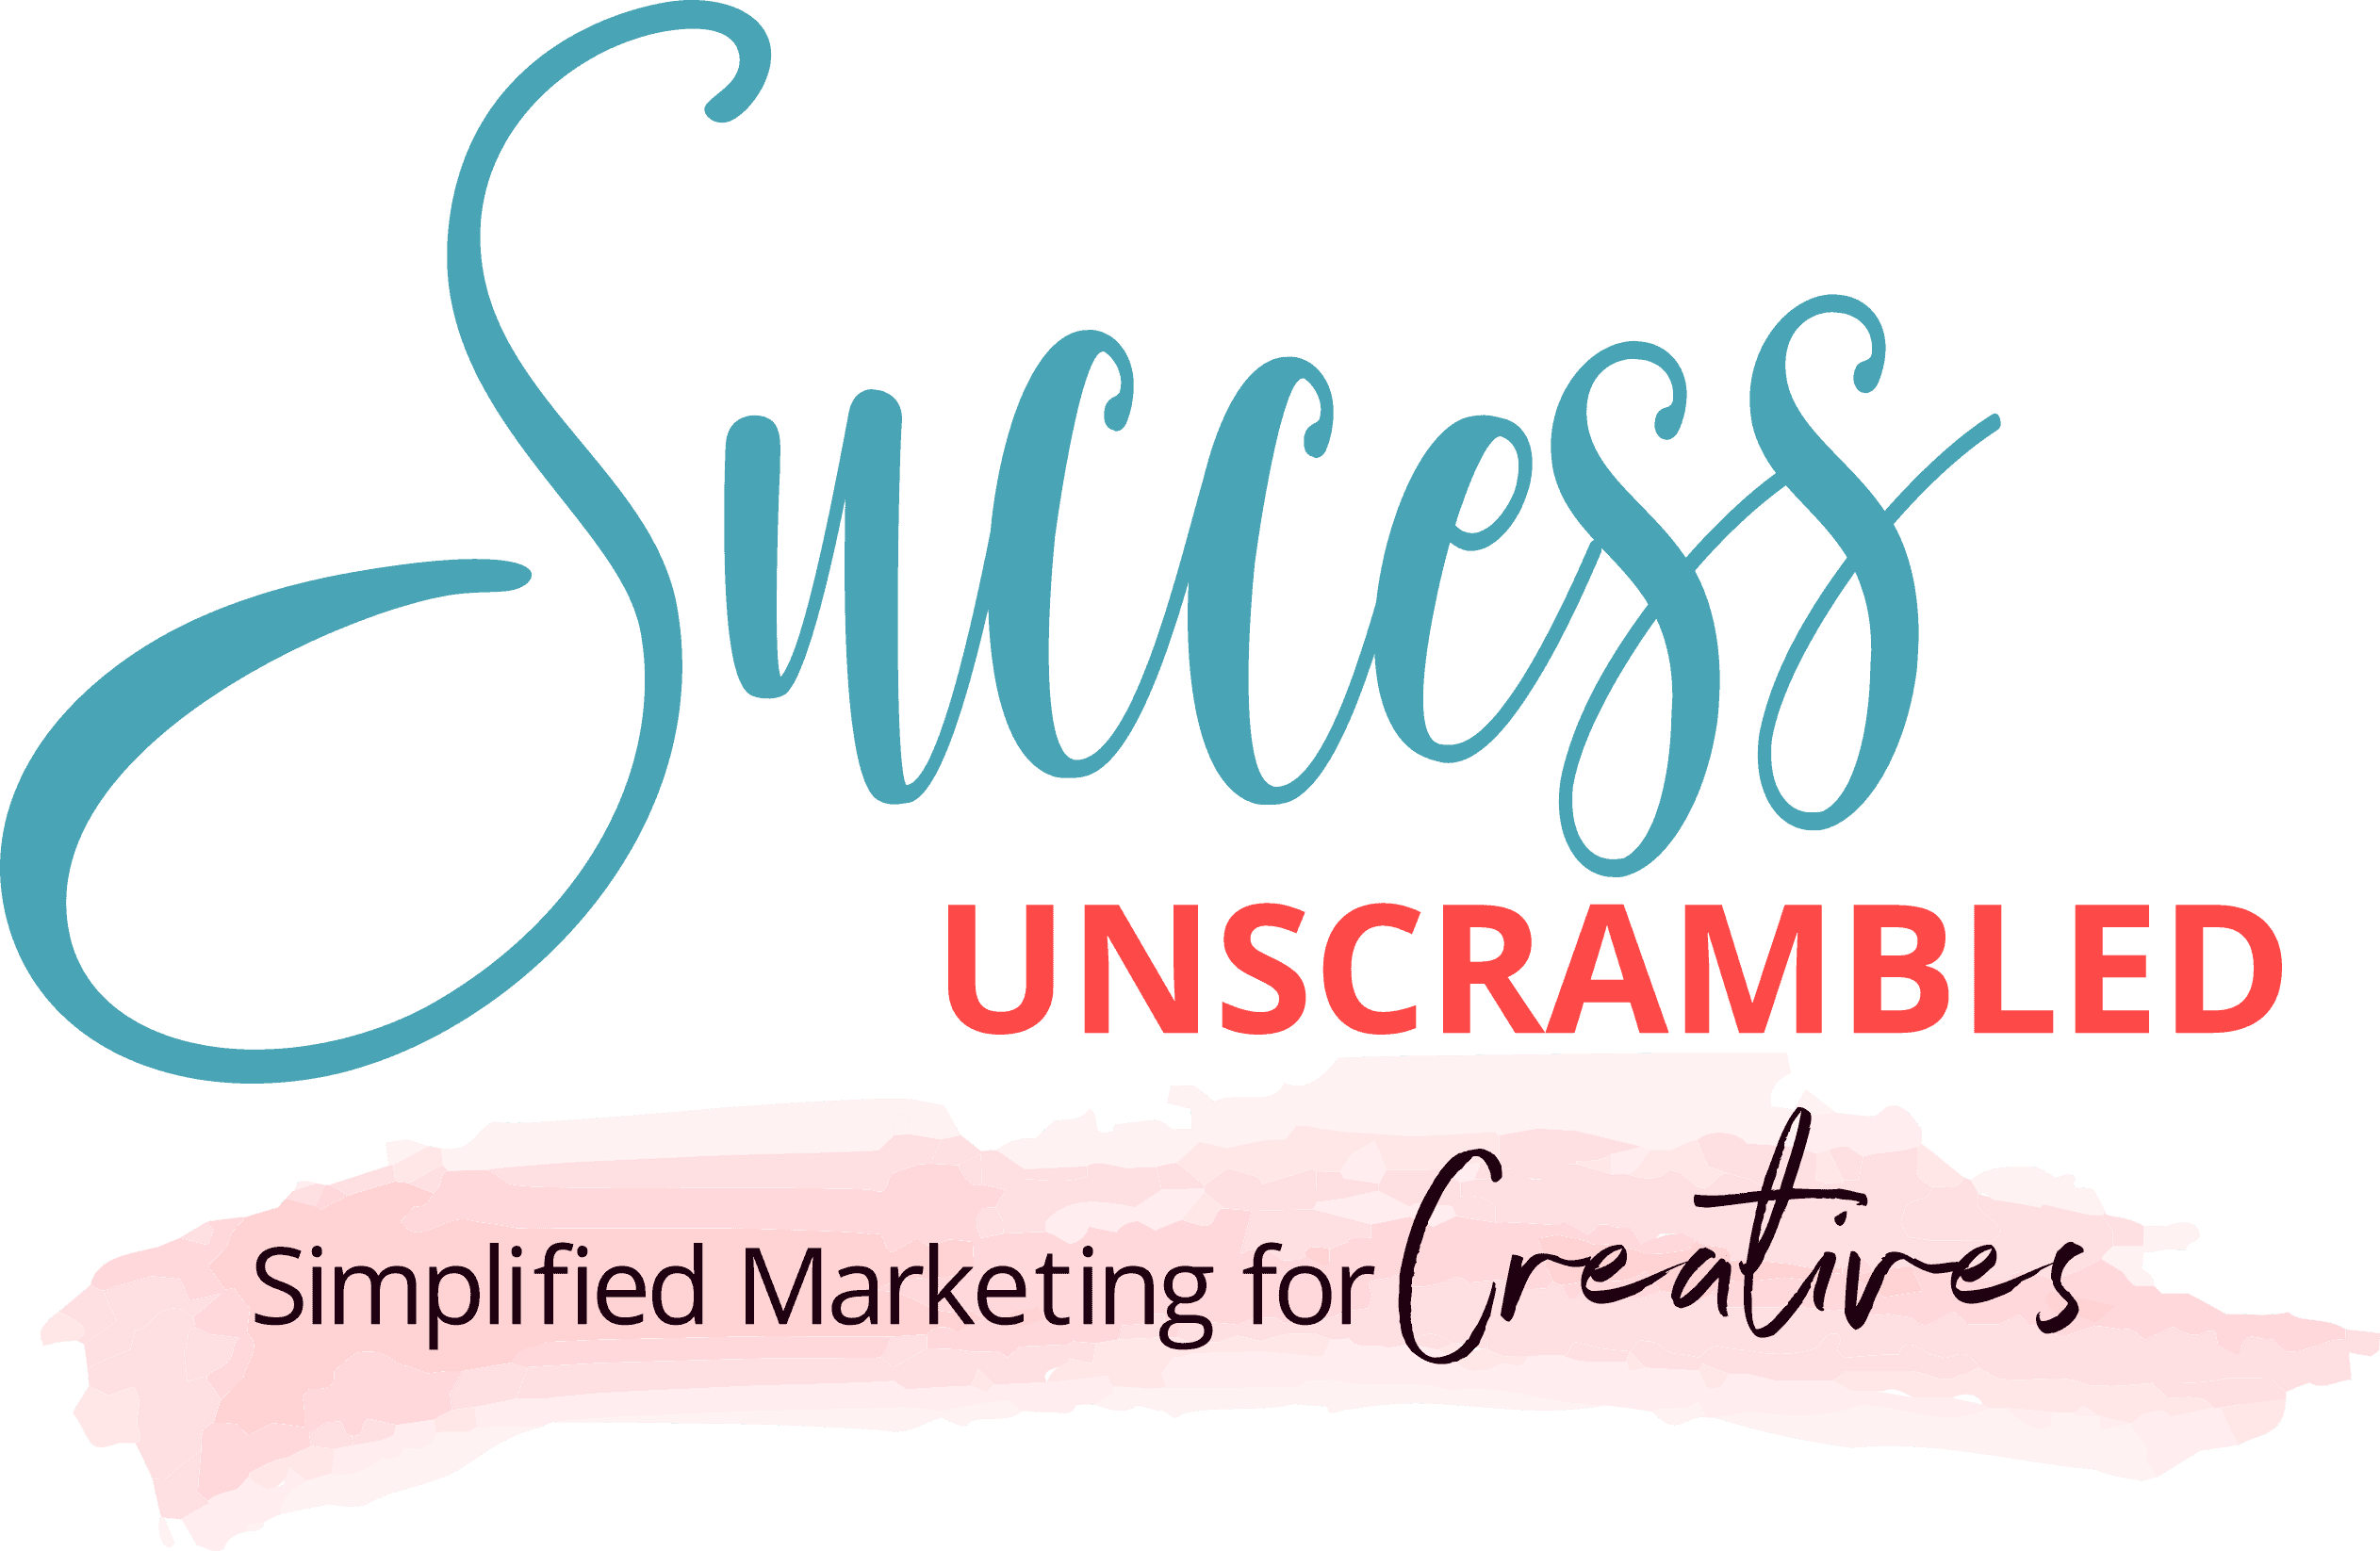 success unscrambled main logo